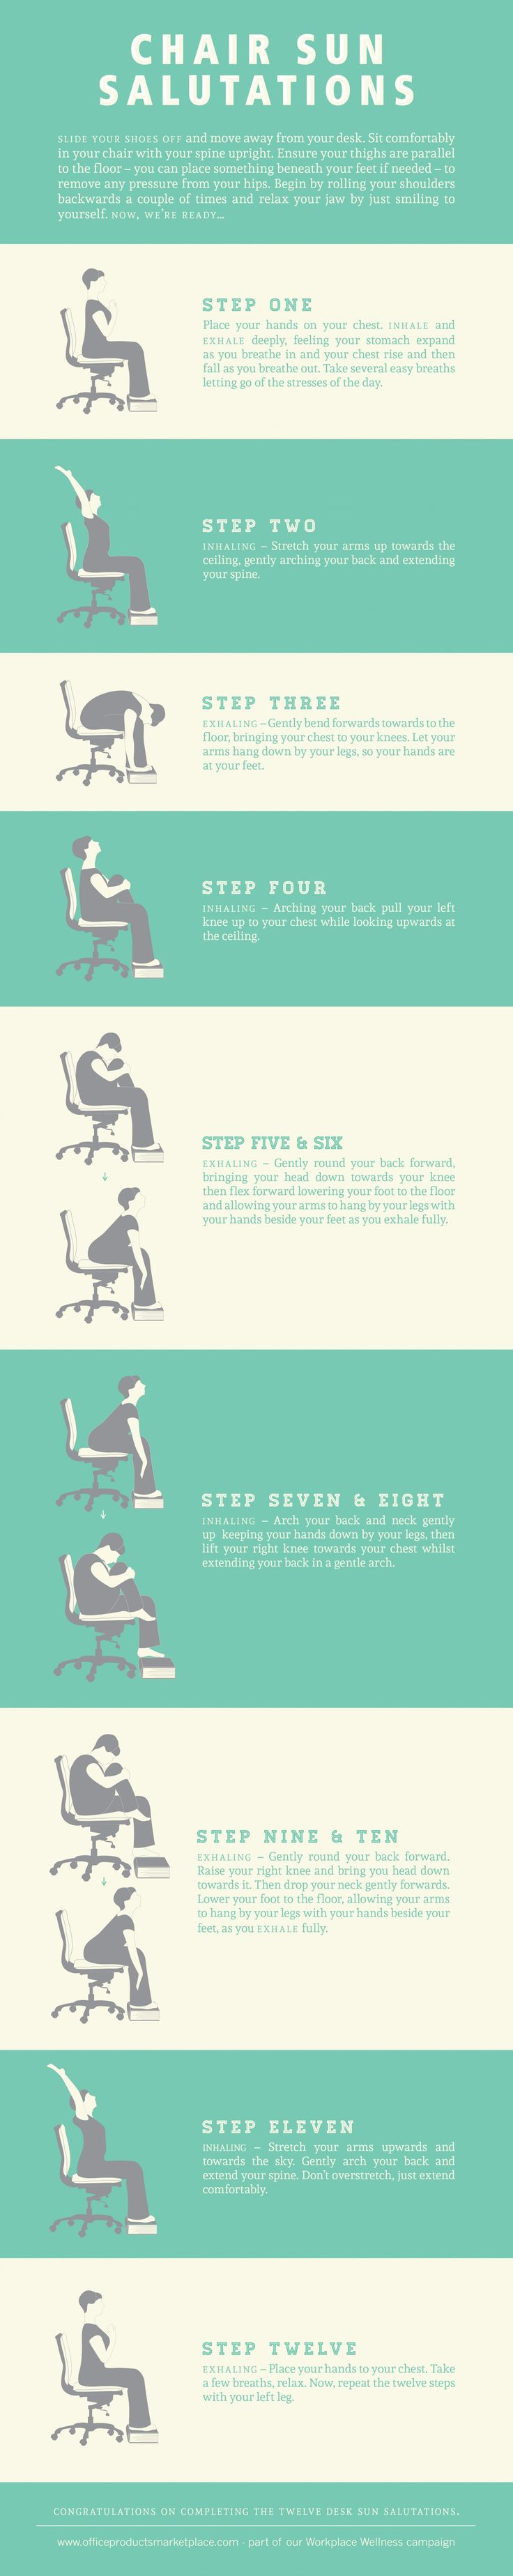 chair sun salutations Yoga & Health